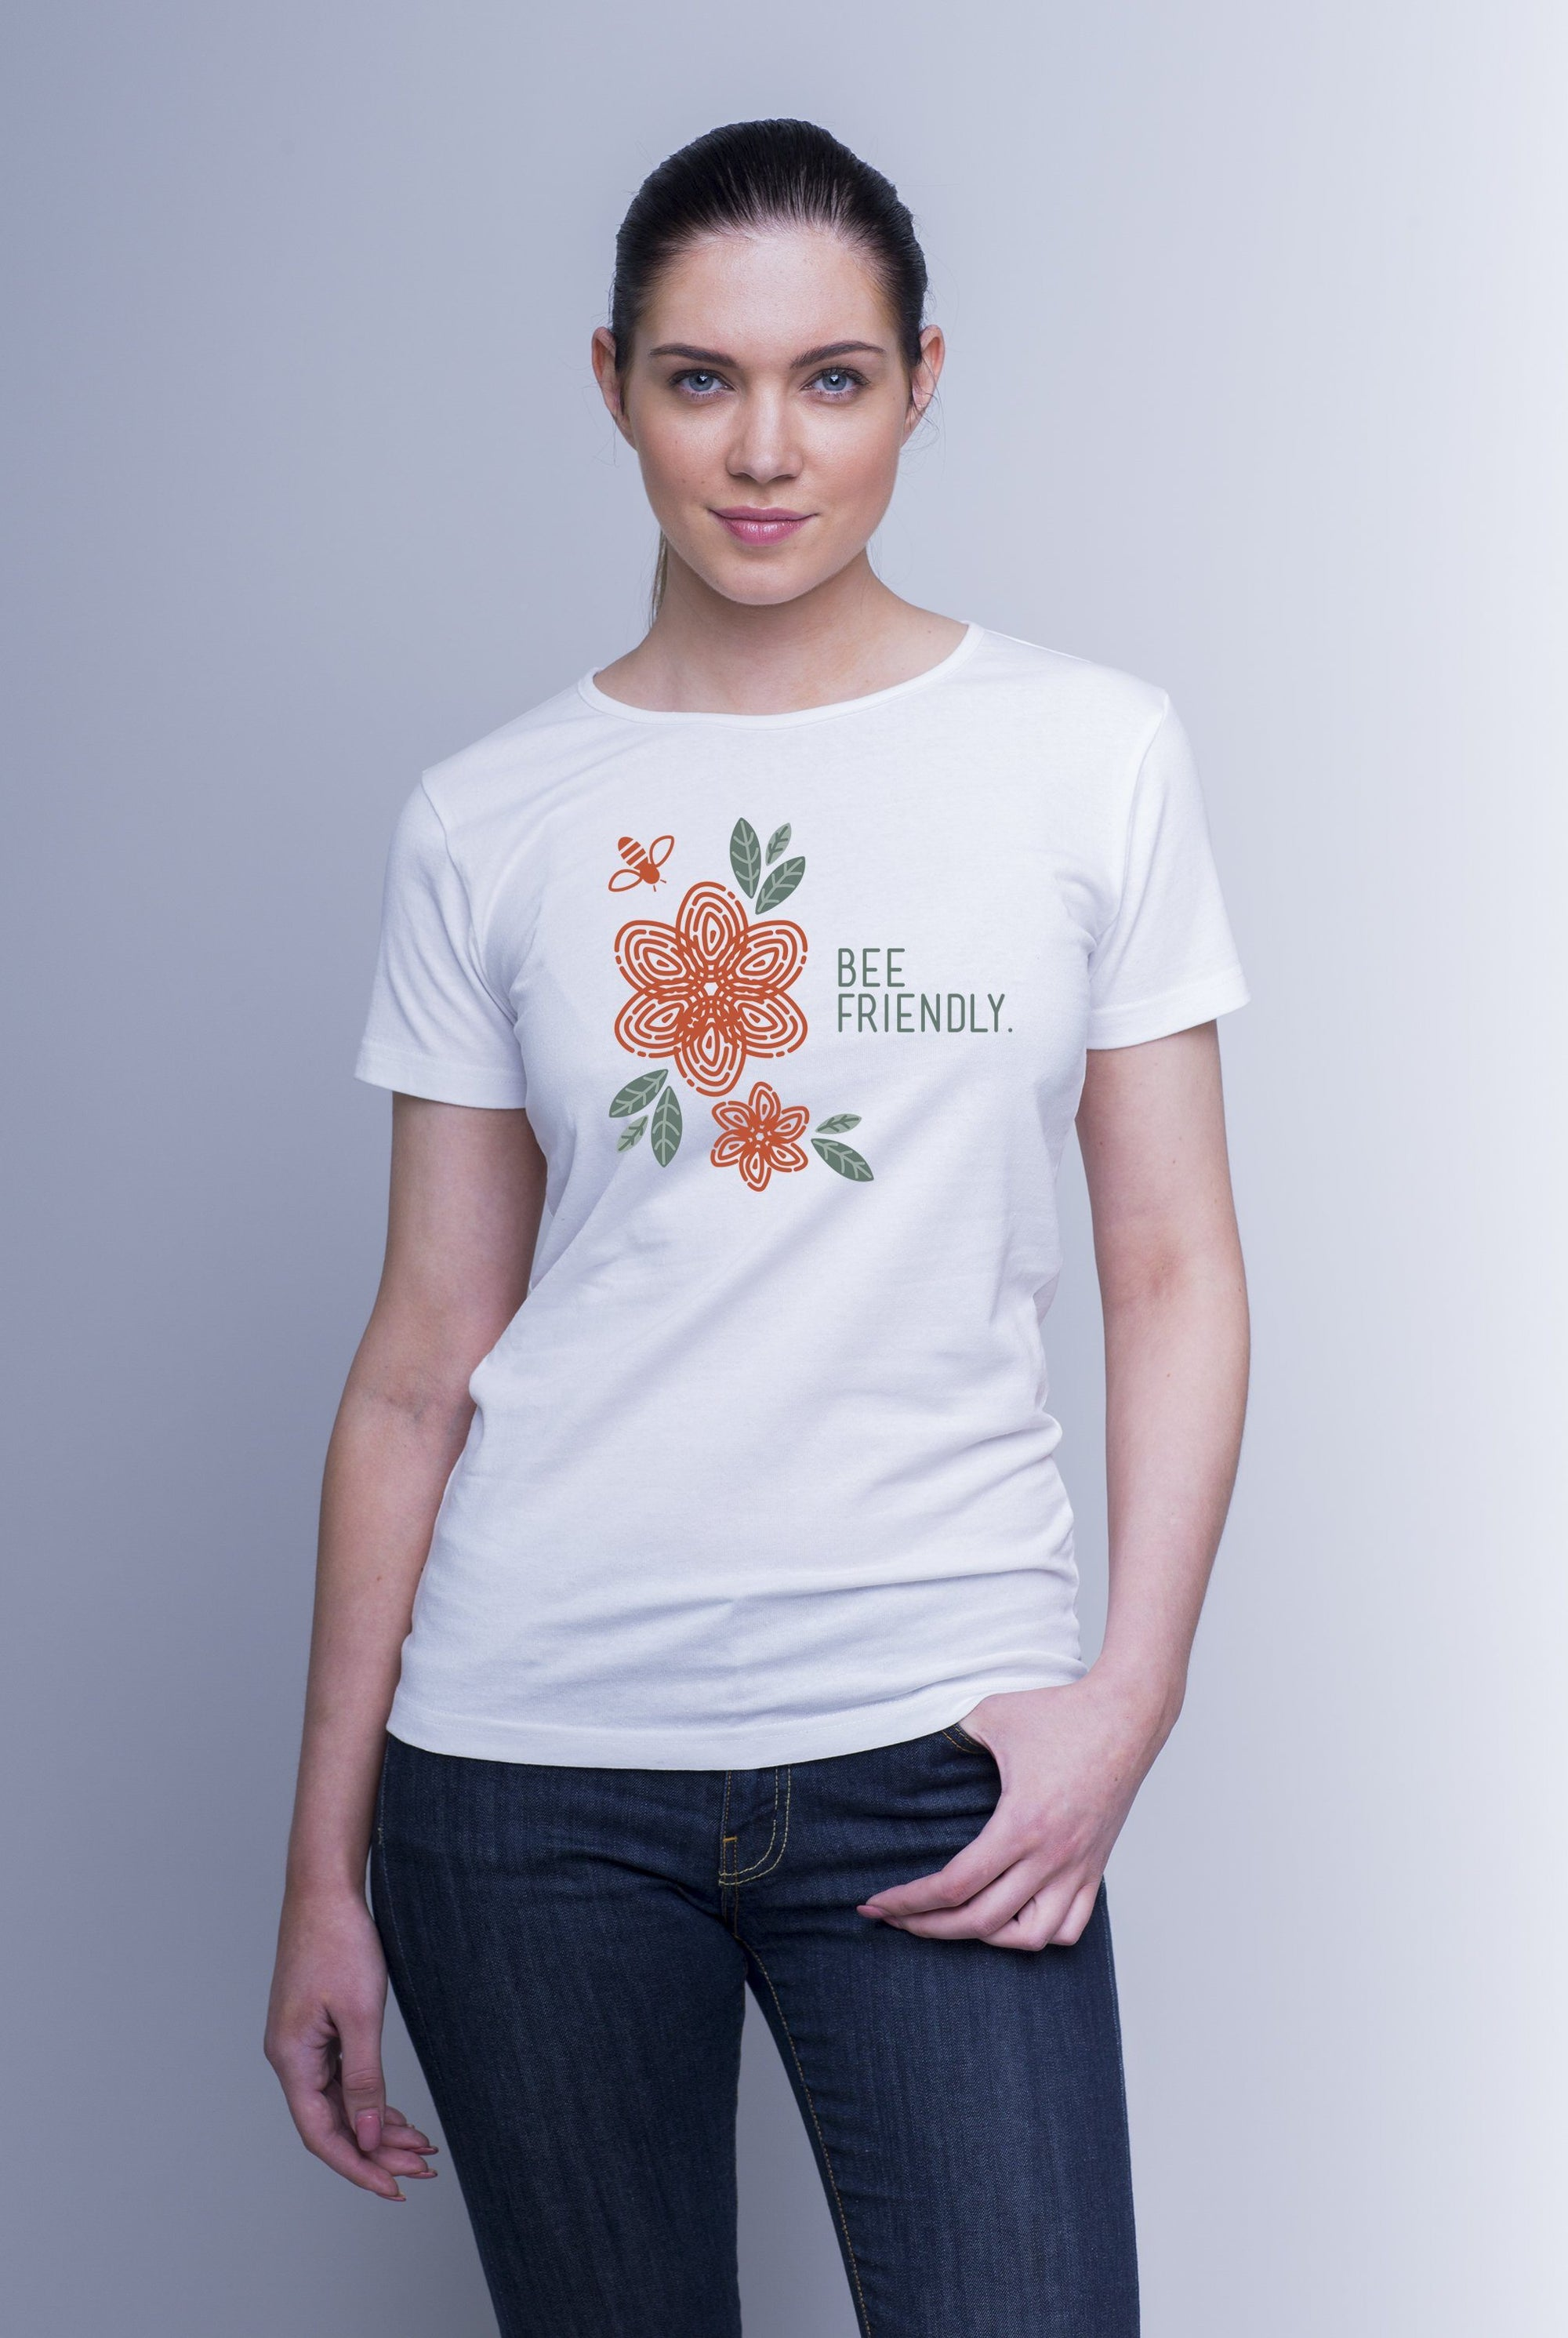 Weekendbee - Women's Bee Friendly - Charity T-Shirt - Weekendbee - sustainable sportswear